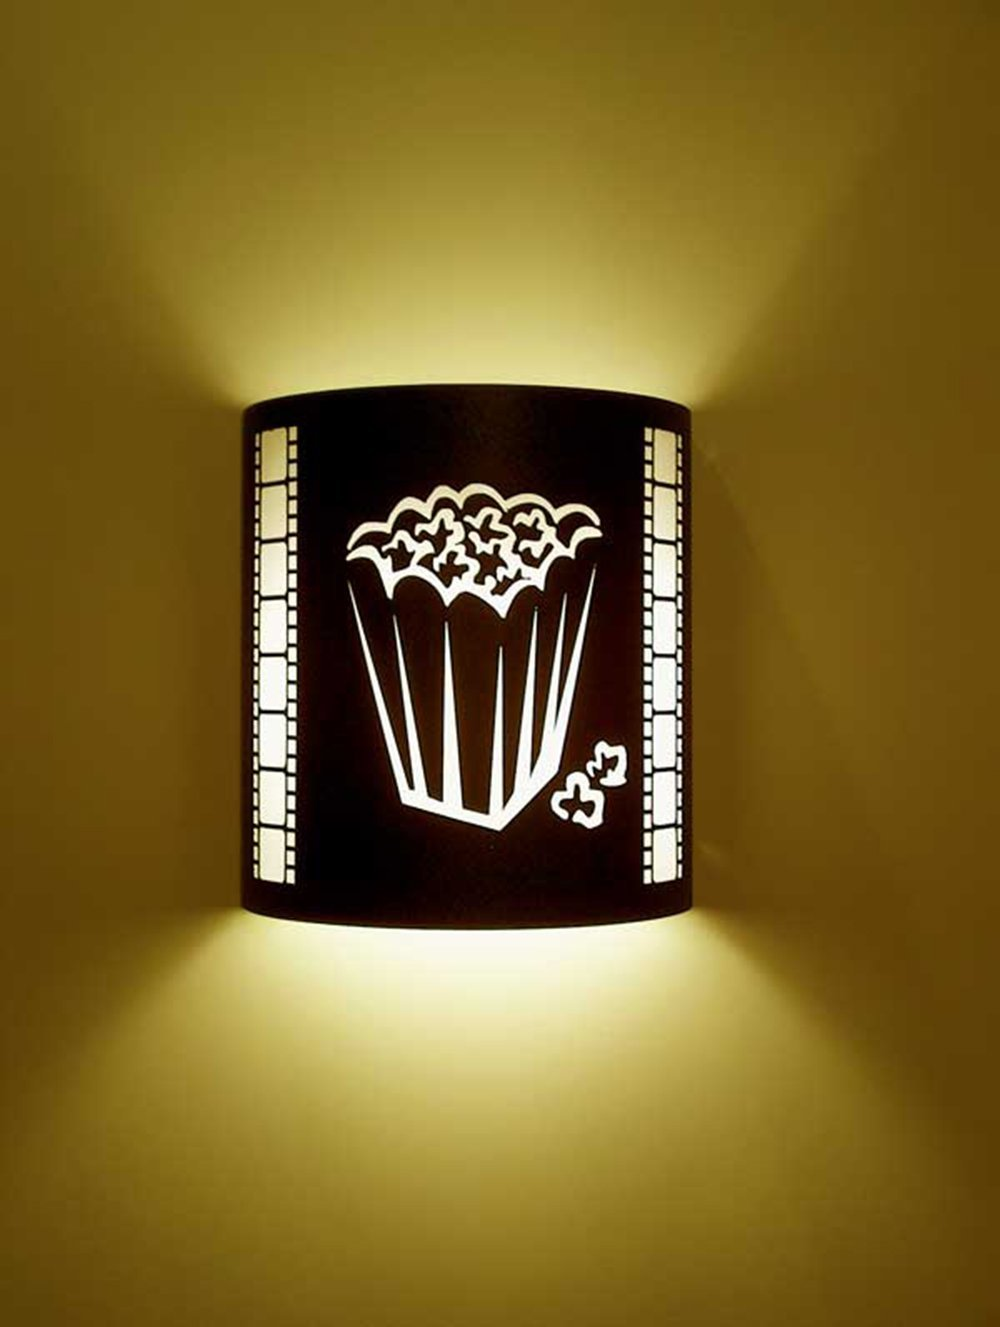 Popcorn Black Home Movie Theater Sconces w/ Filmstrips by Stargate